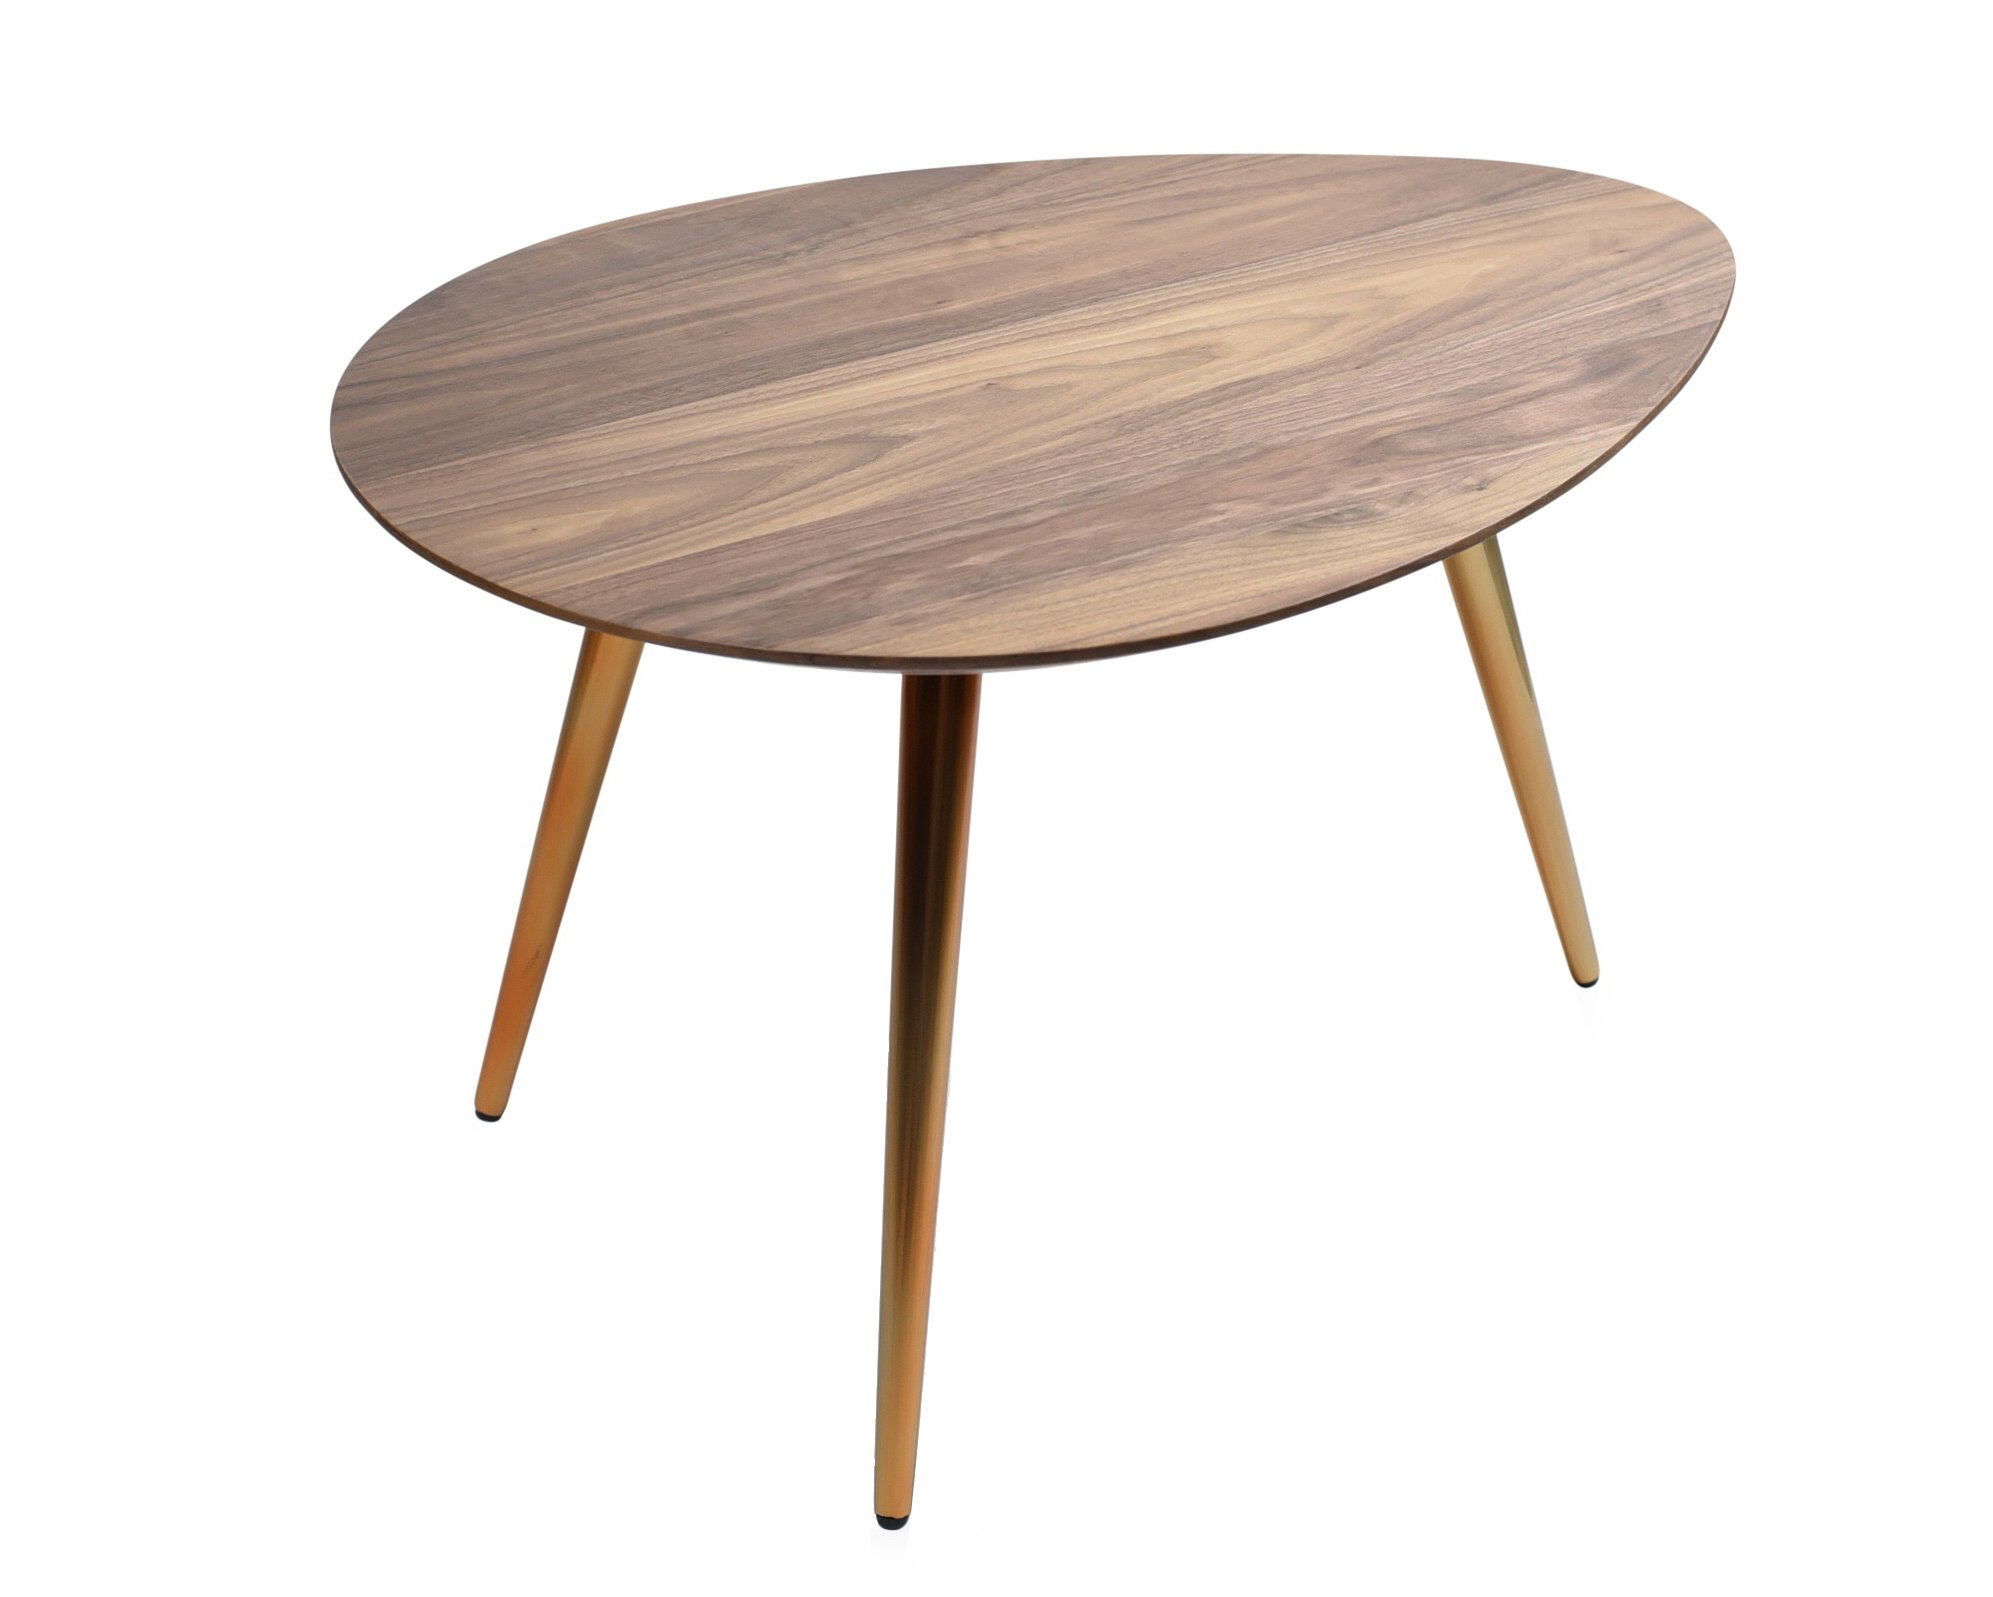 Edloe Finch Small Coffee Table - Mid Century Modern Coffee Tables for Living Room - Contemporary & Retro Low Walnut Wood Midcentury - Oval/Round - 25 inches by Edloe Finch